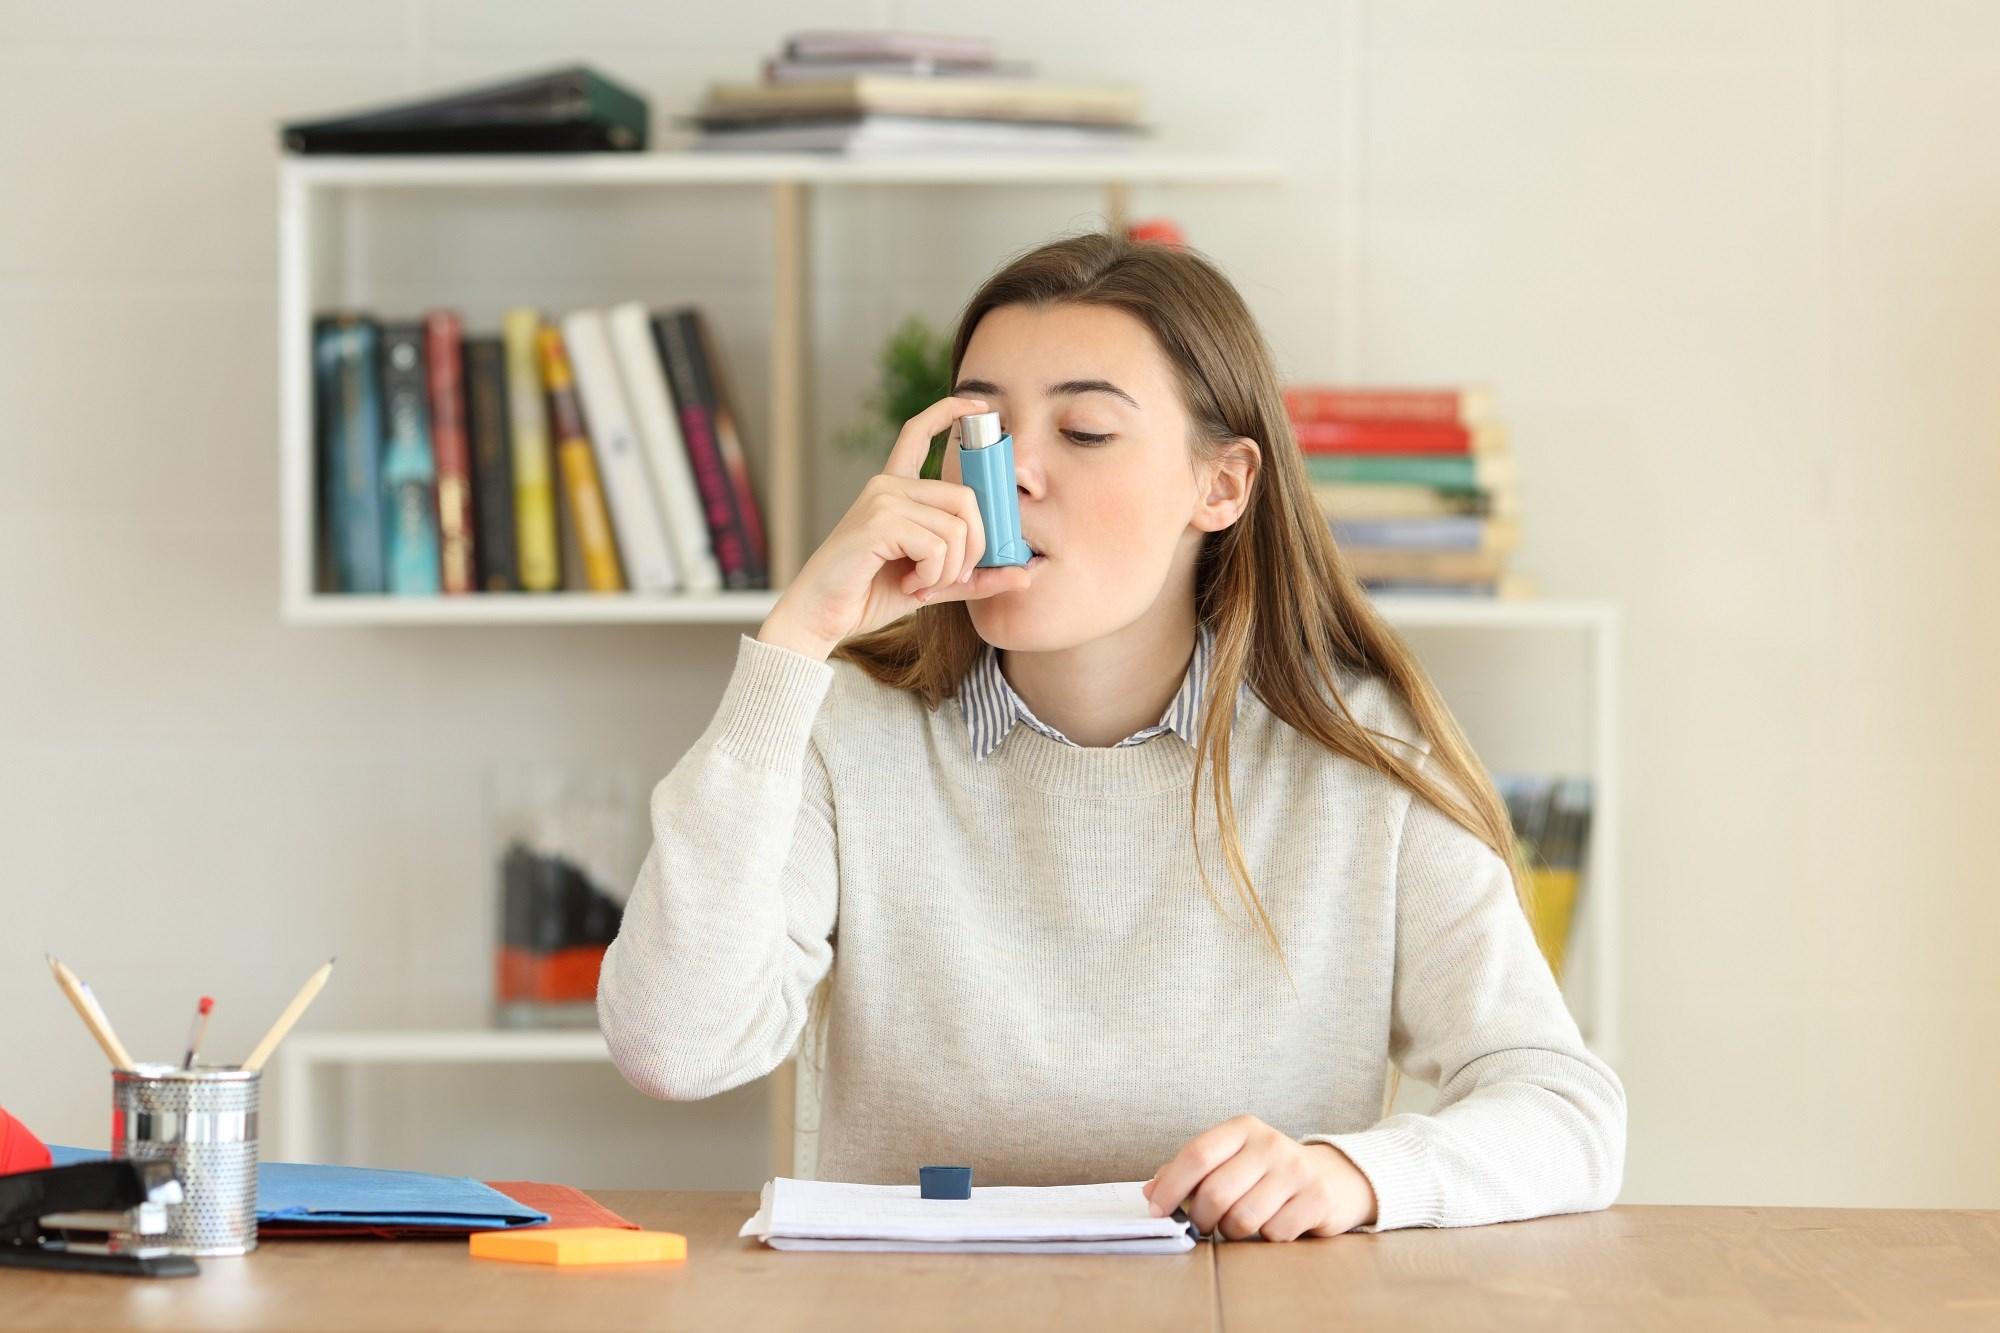 Lung Function Improved With Dupilumab in Adolescents With Asthma